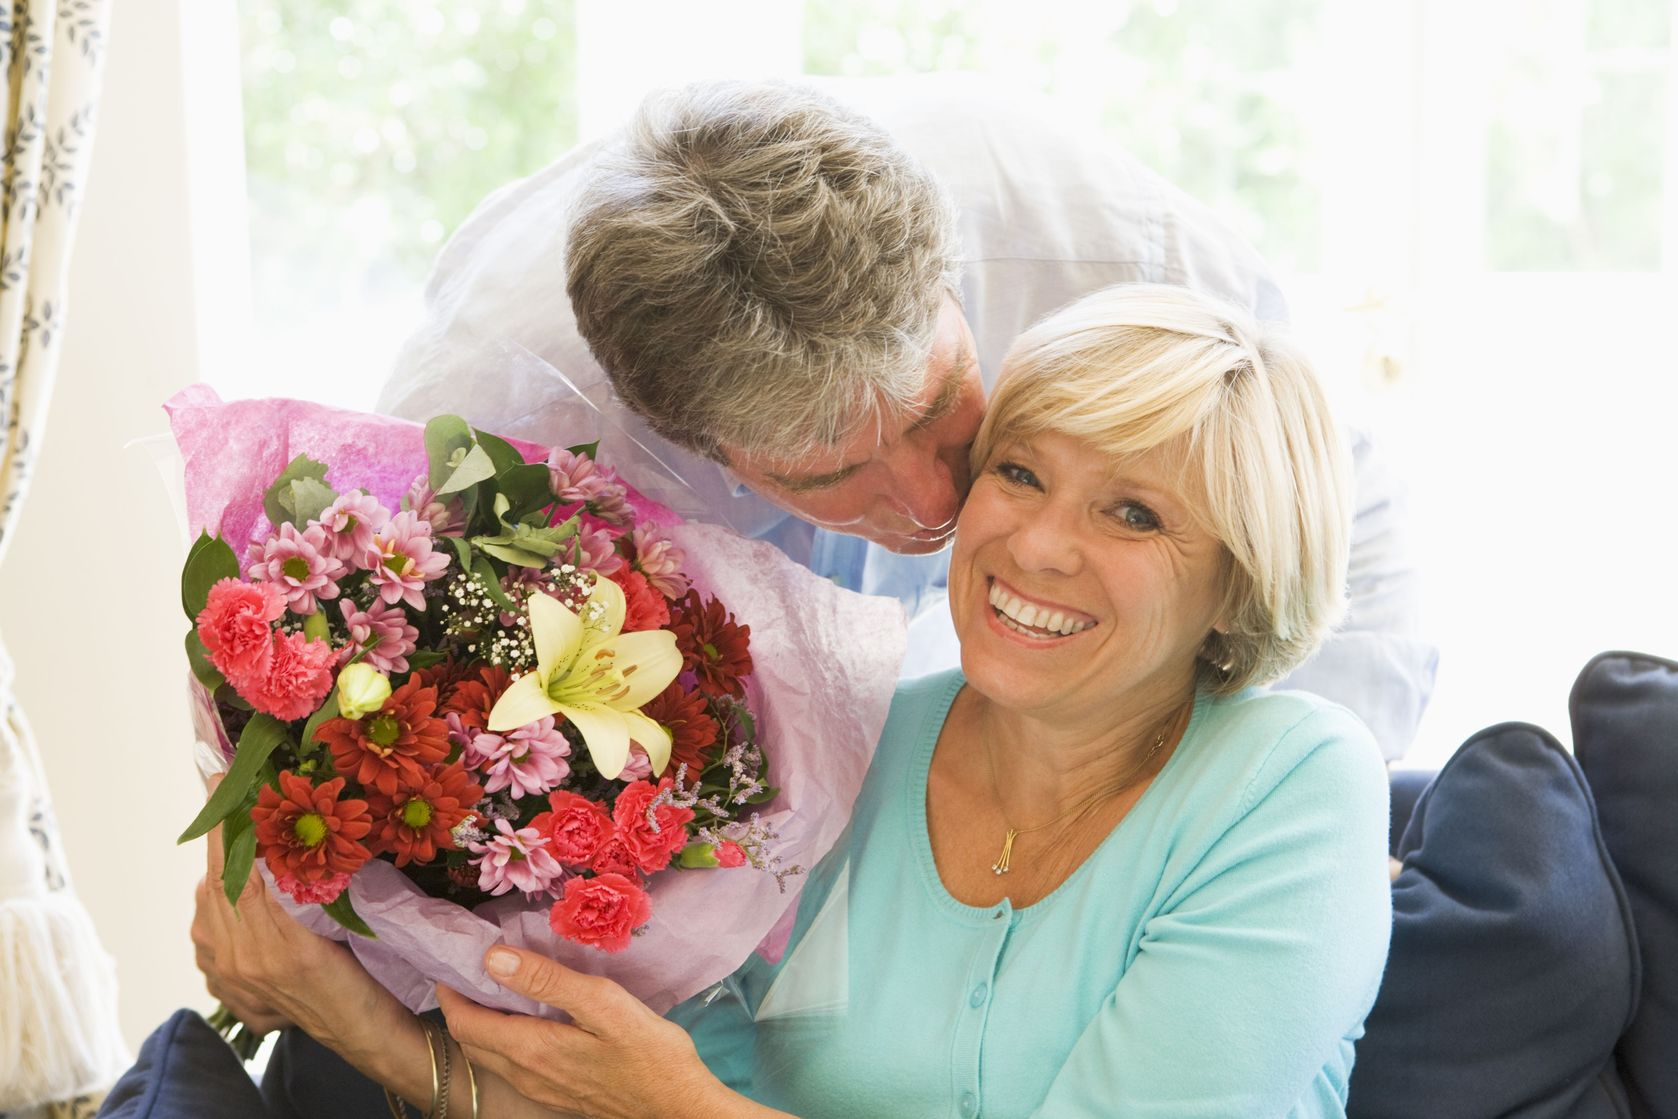 Why should you send flowers?